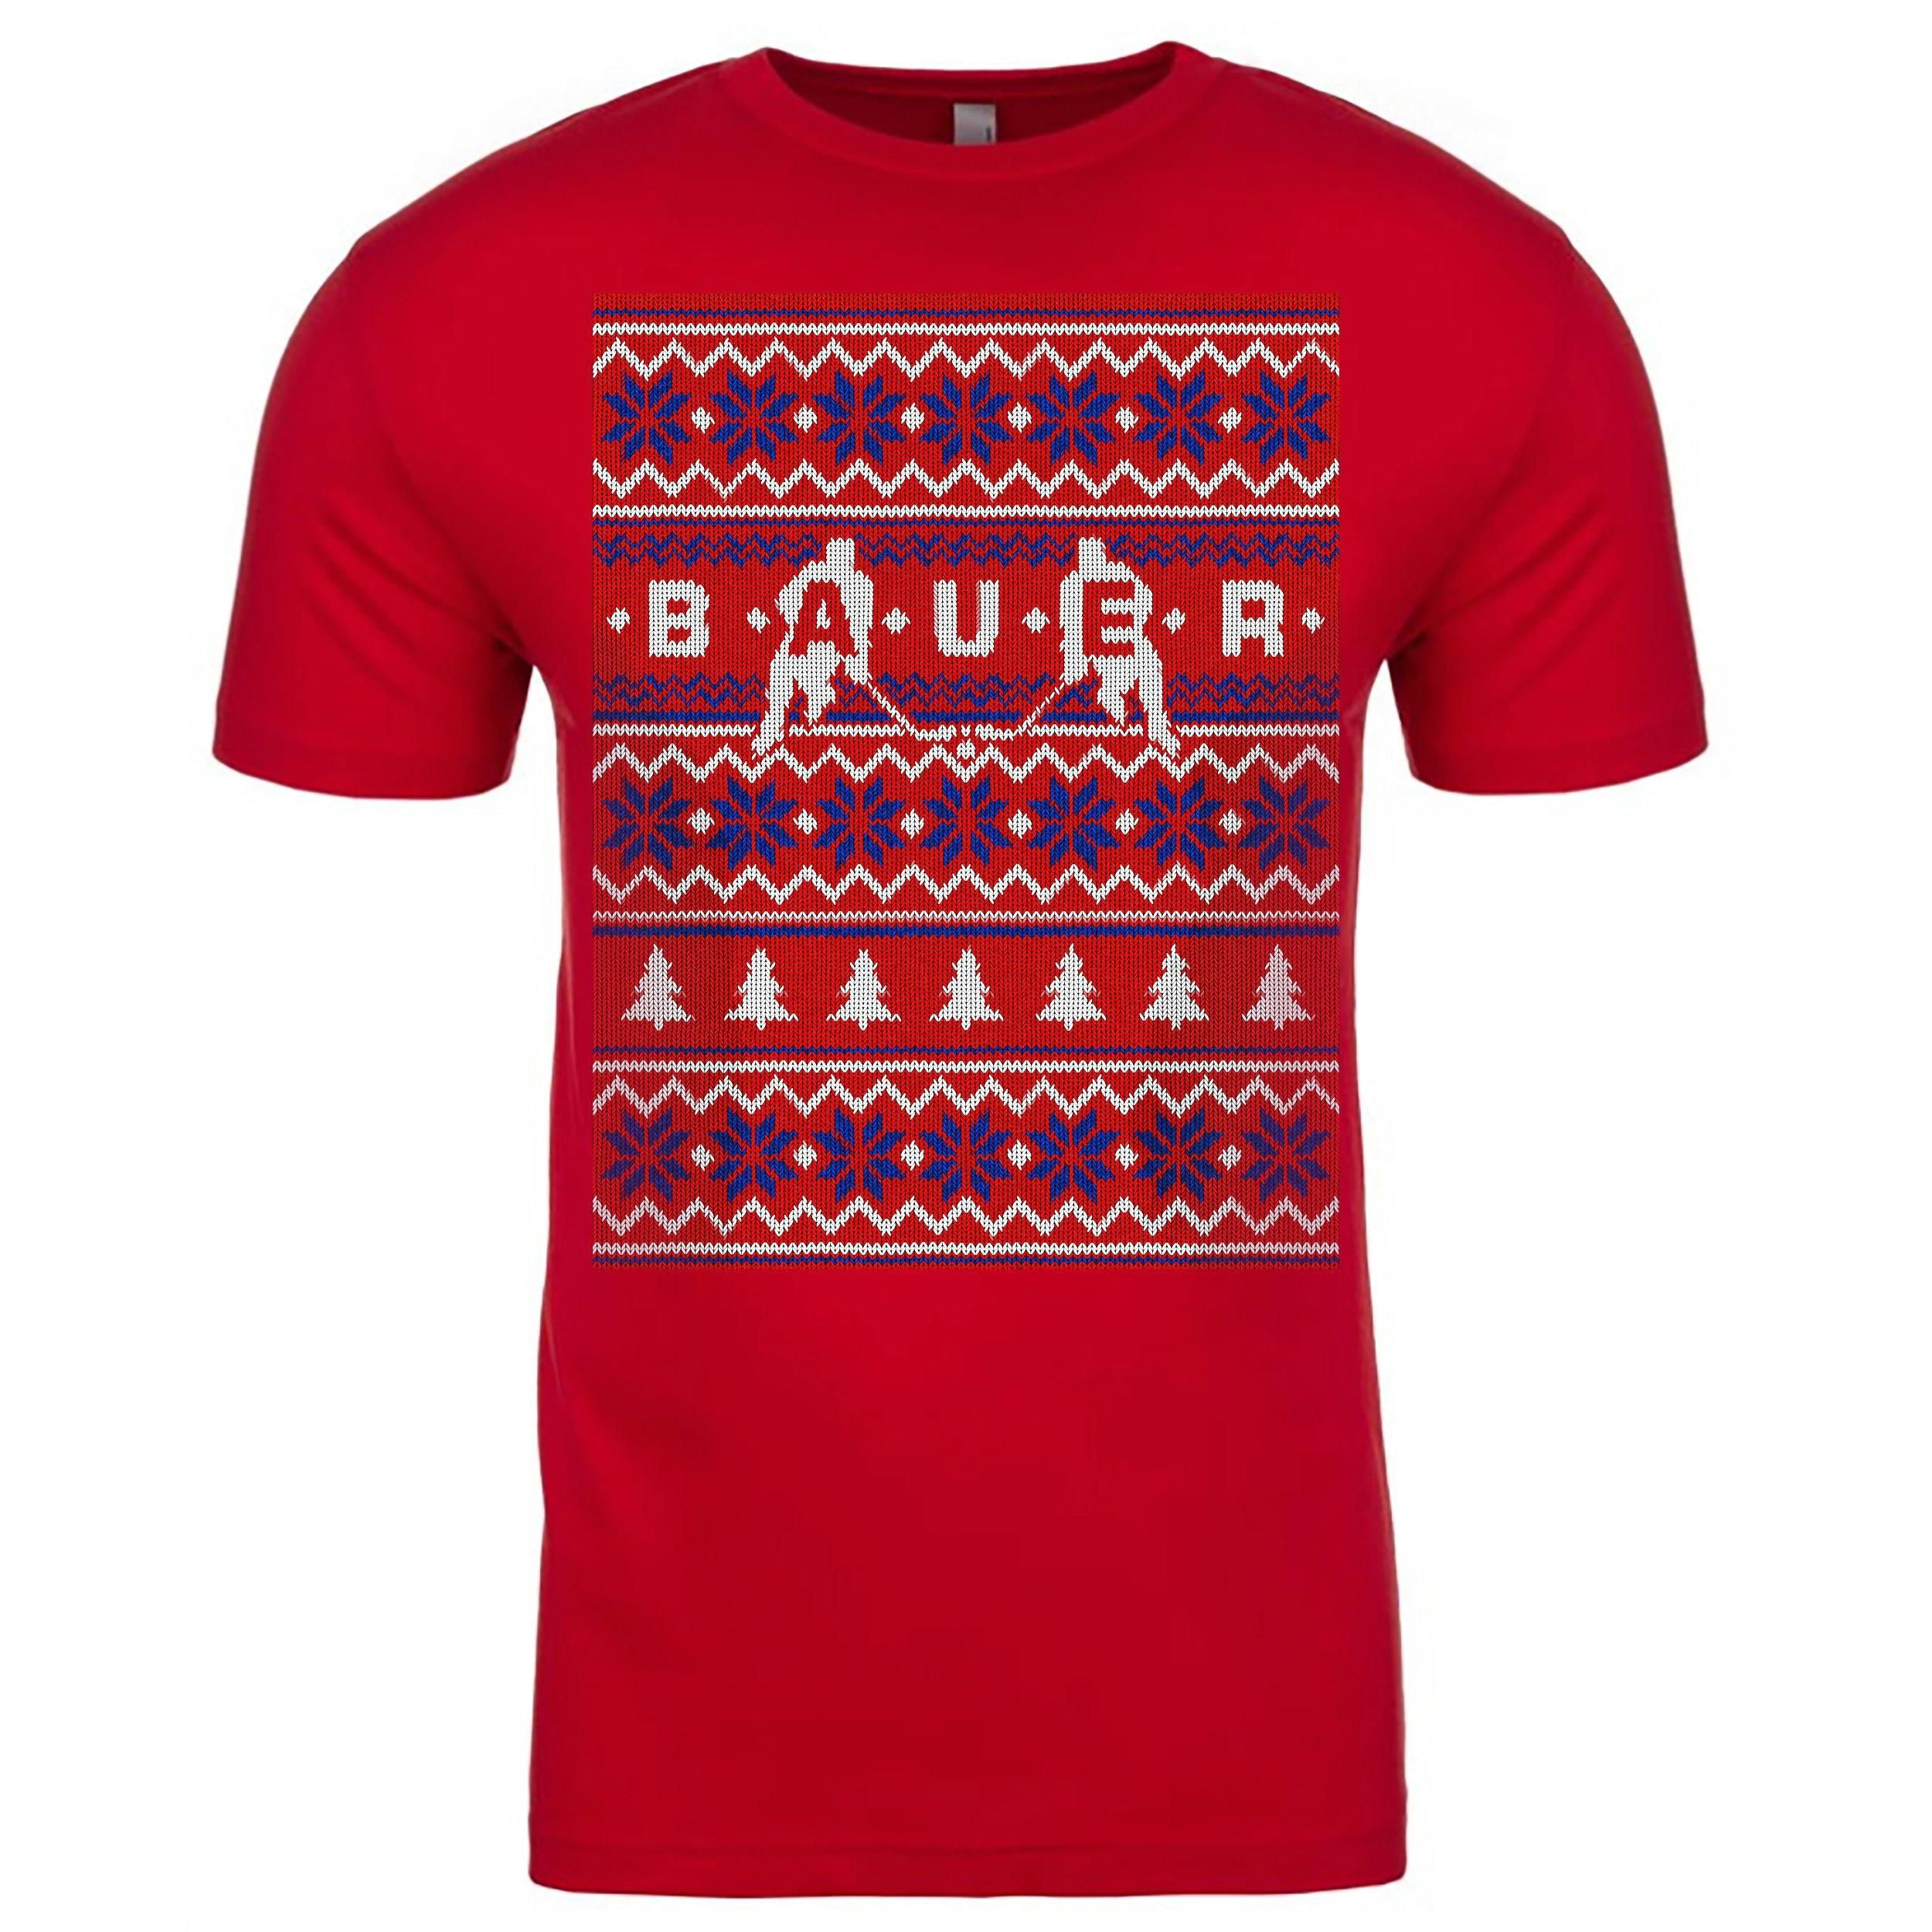 fb372c53de4 Bauer Short Sleeve Tee - Holiday Sweater Senior